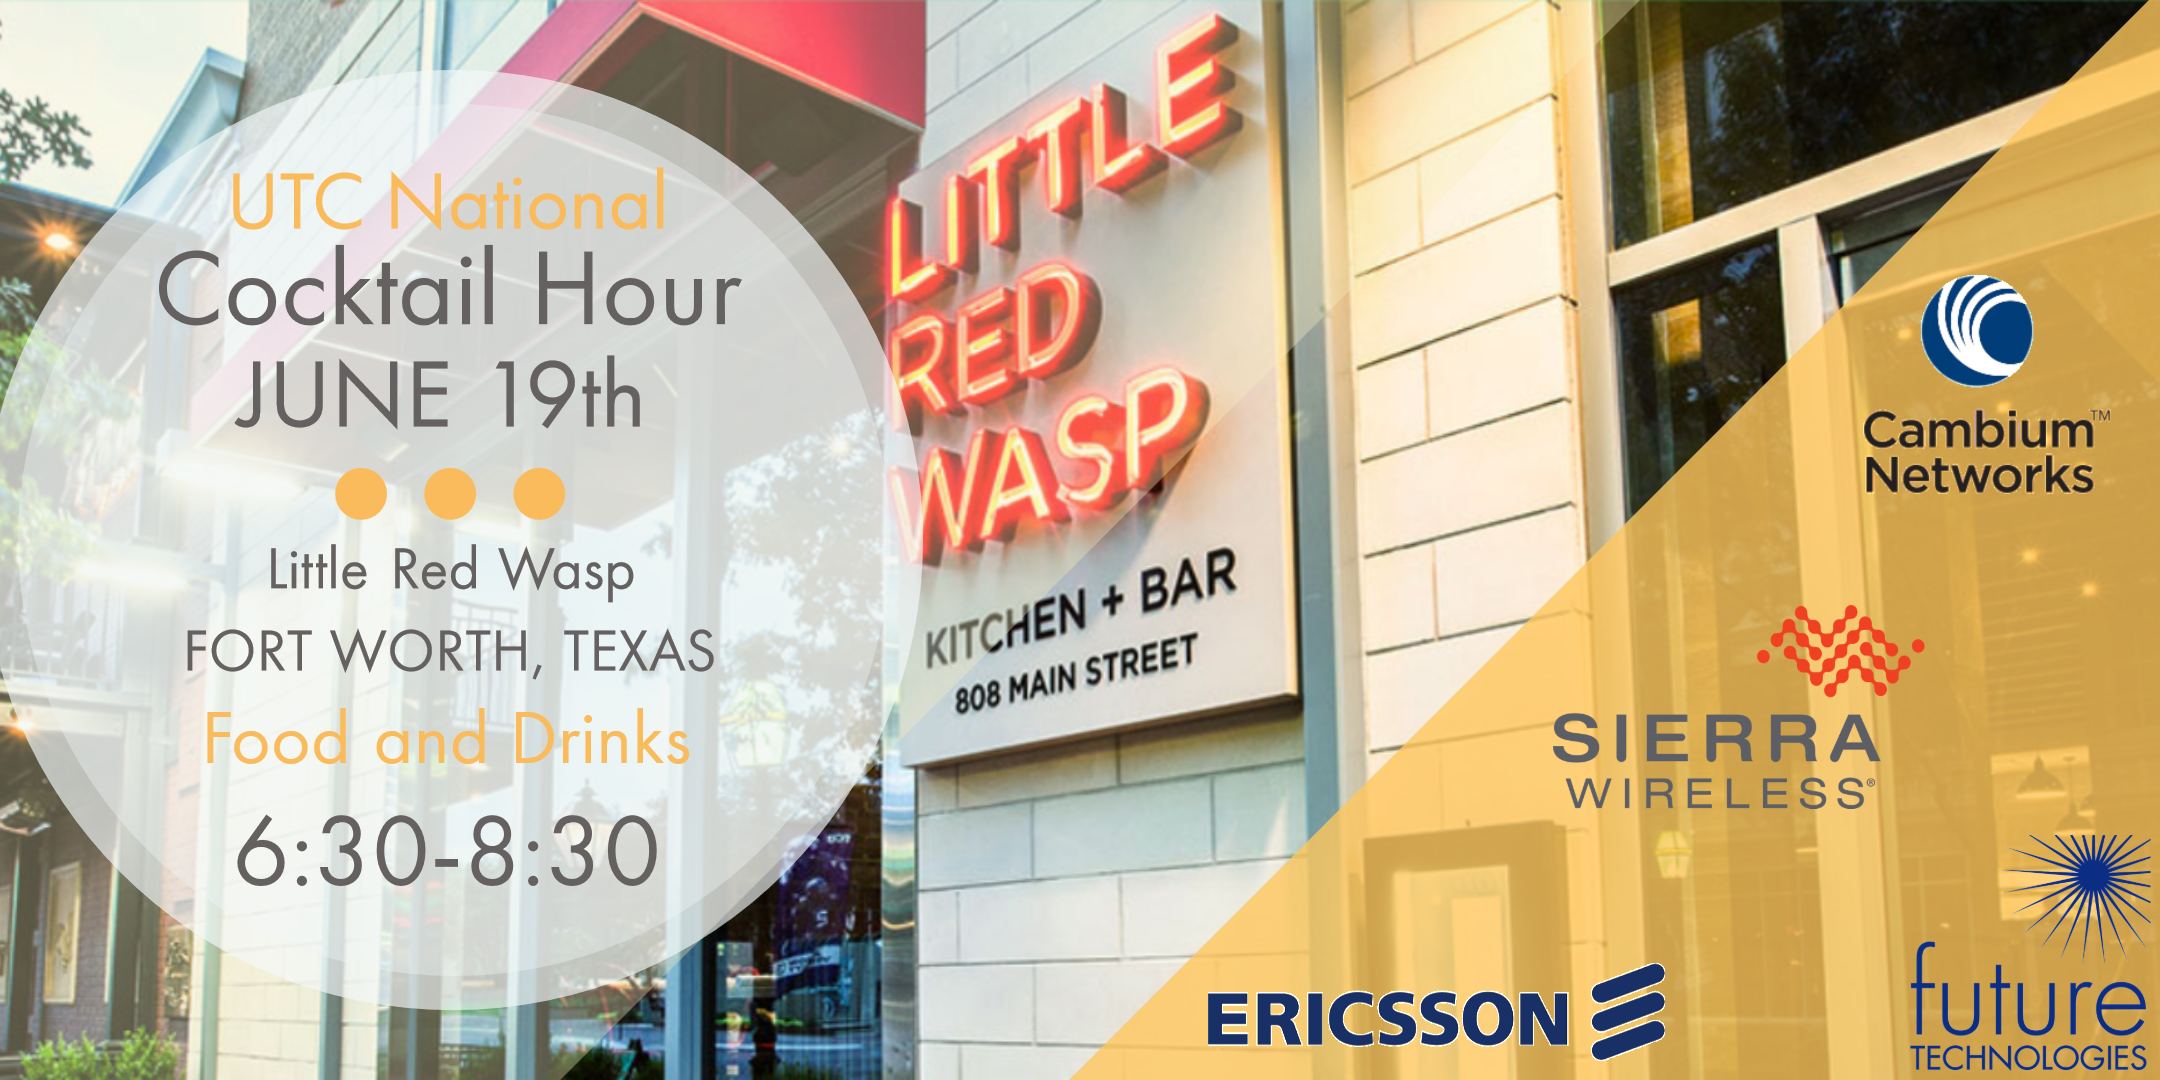 Do you plan to be at UTC National? We'd be happy to discuss the benefits of LTE for evolving grid. We will be hosting a cocktail hour with three of our leading vendors right after the show on Wednesday the 19th and we'd love to have you join us for some fun and networking.